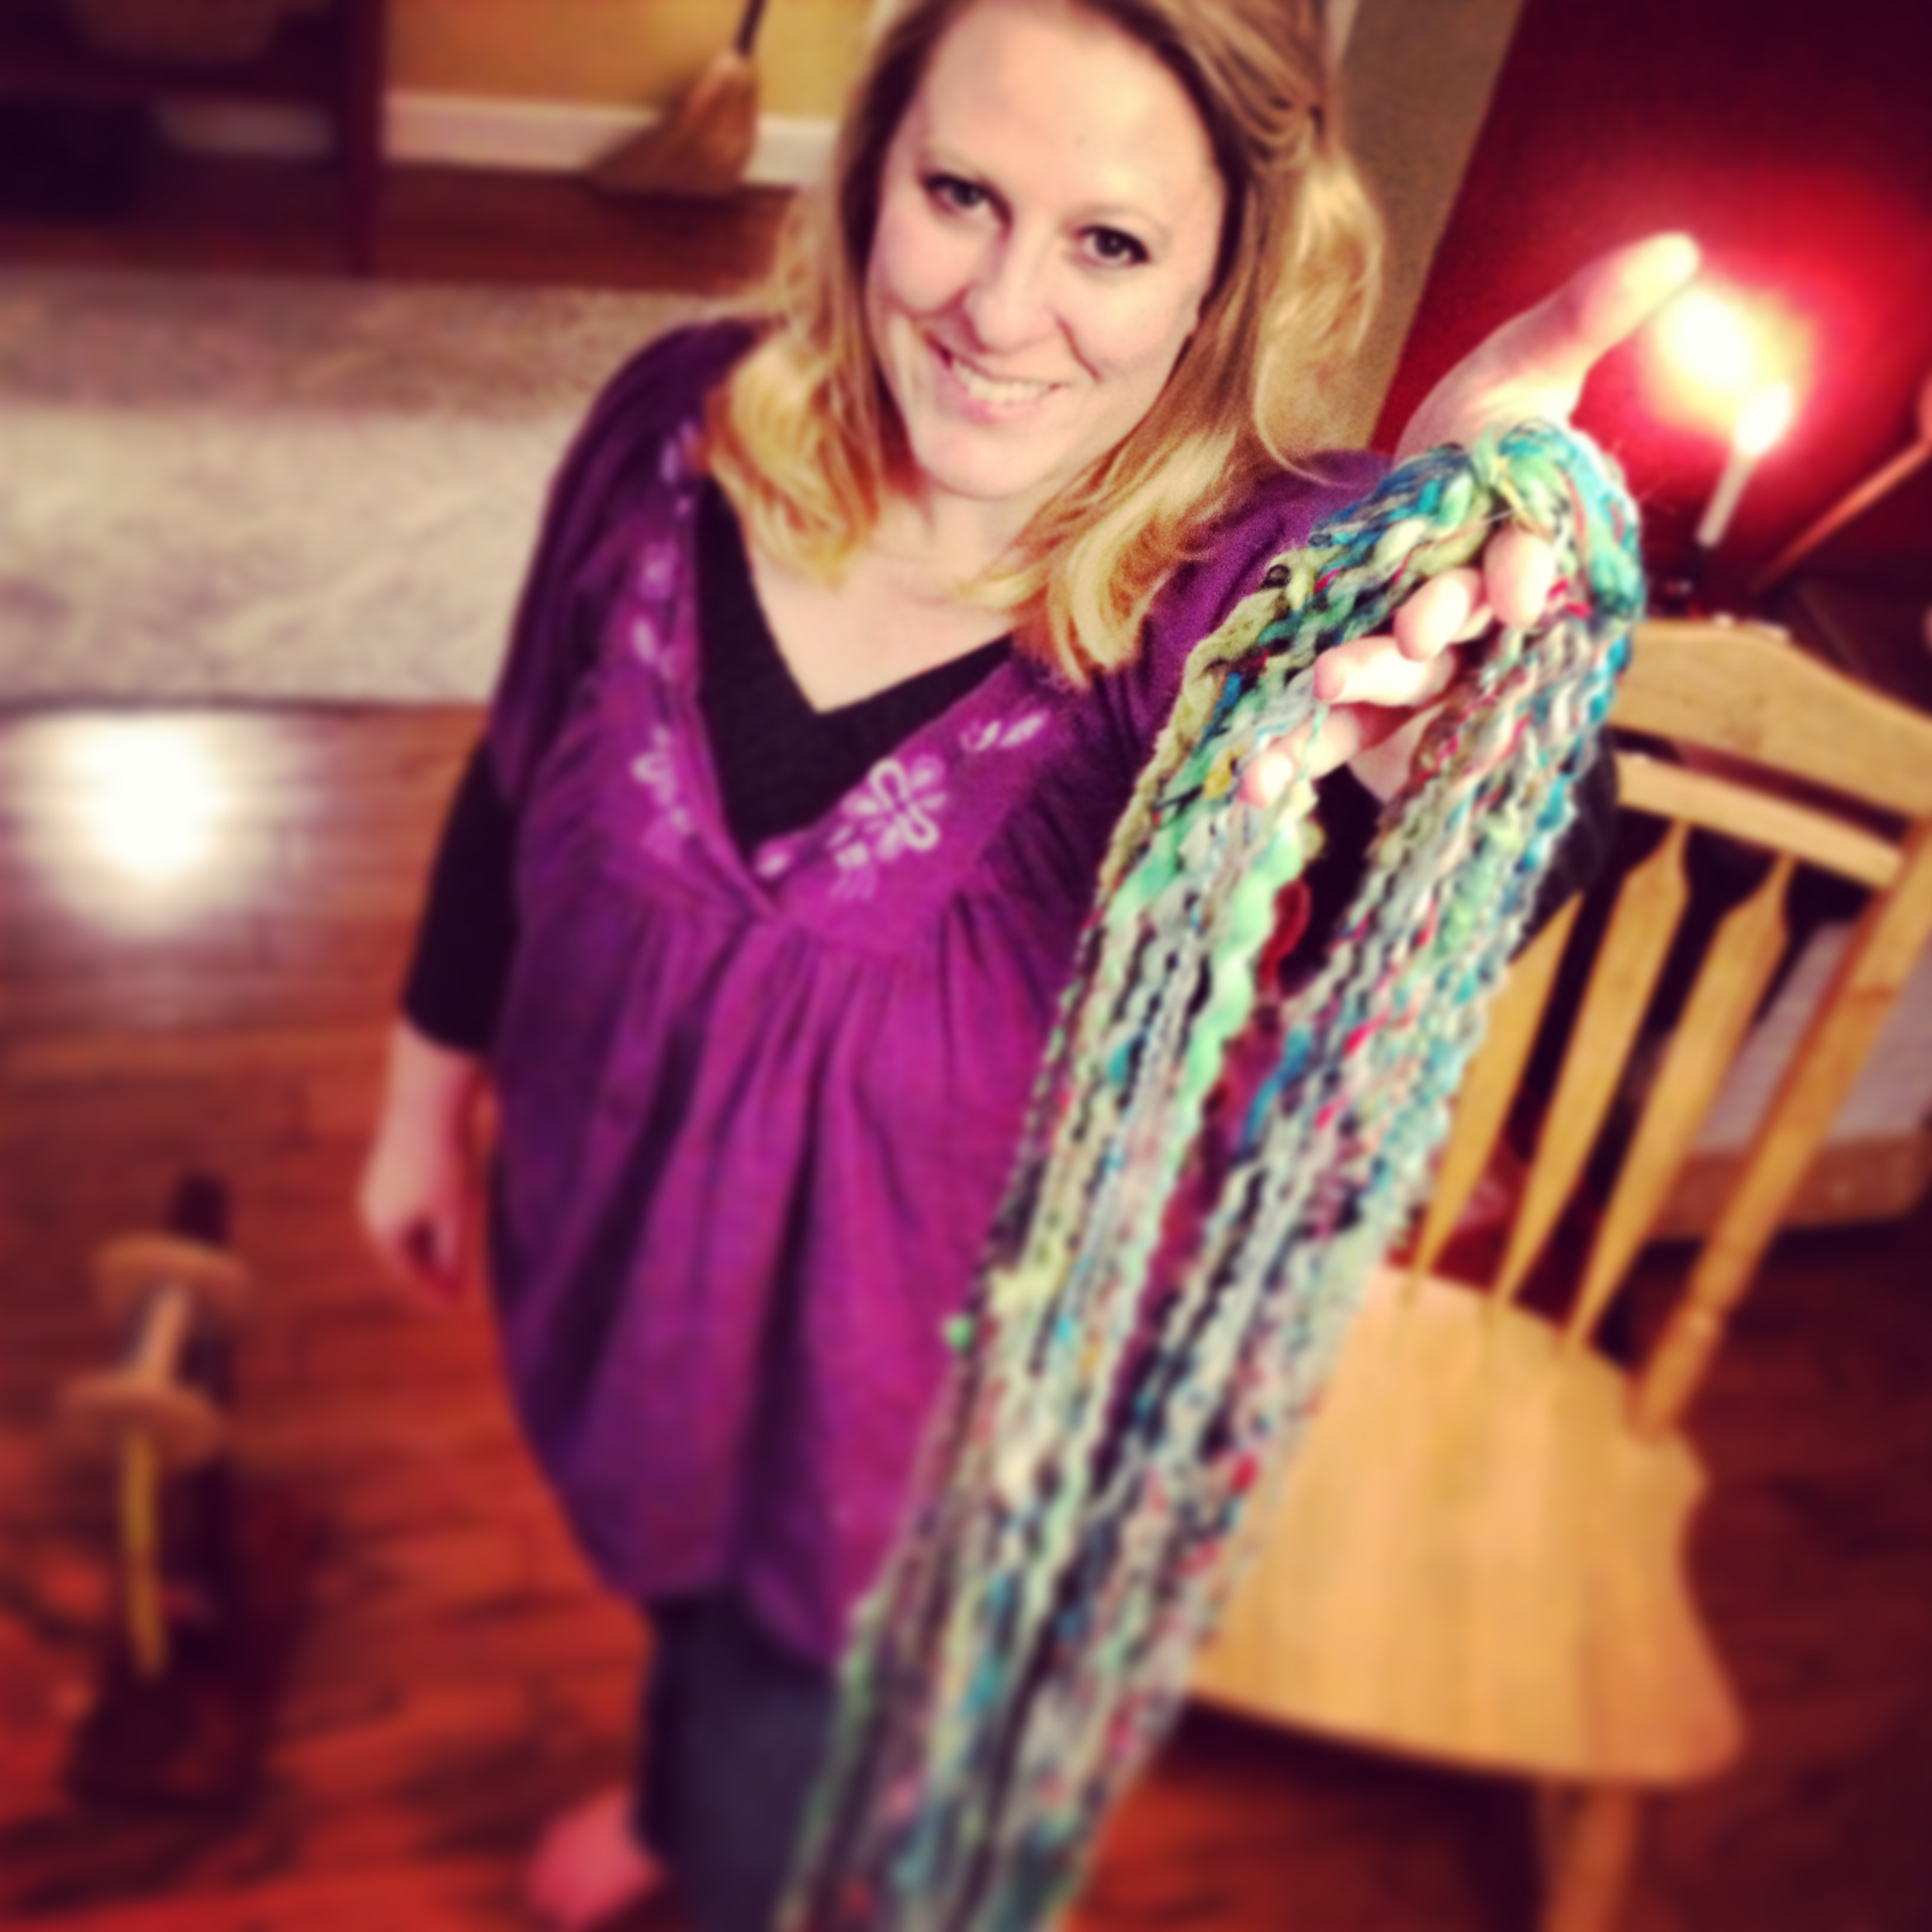 Cyndi Minister owner of The Twisted Purl with Handspun Yarn Handmade